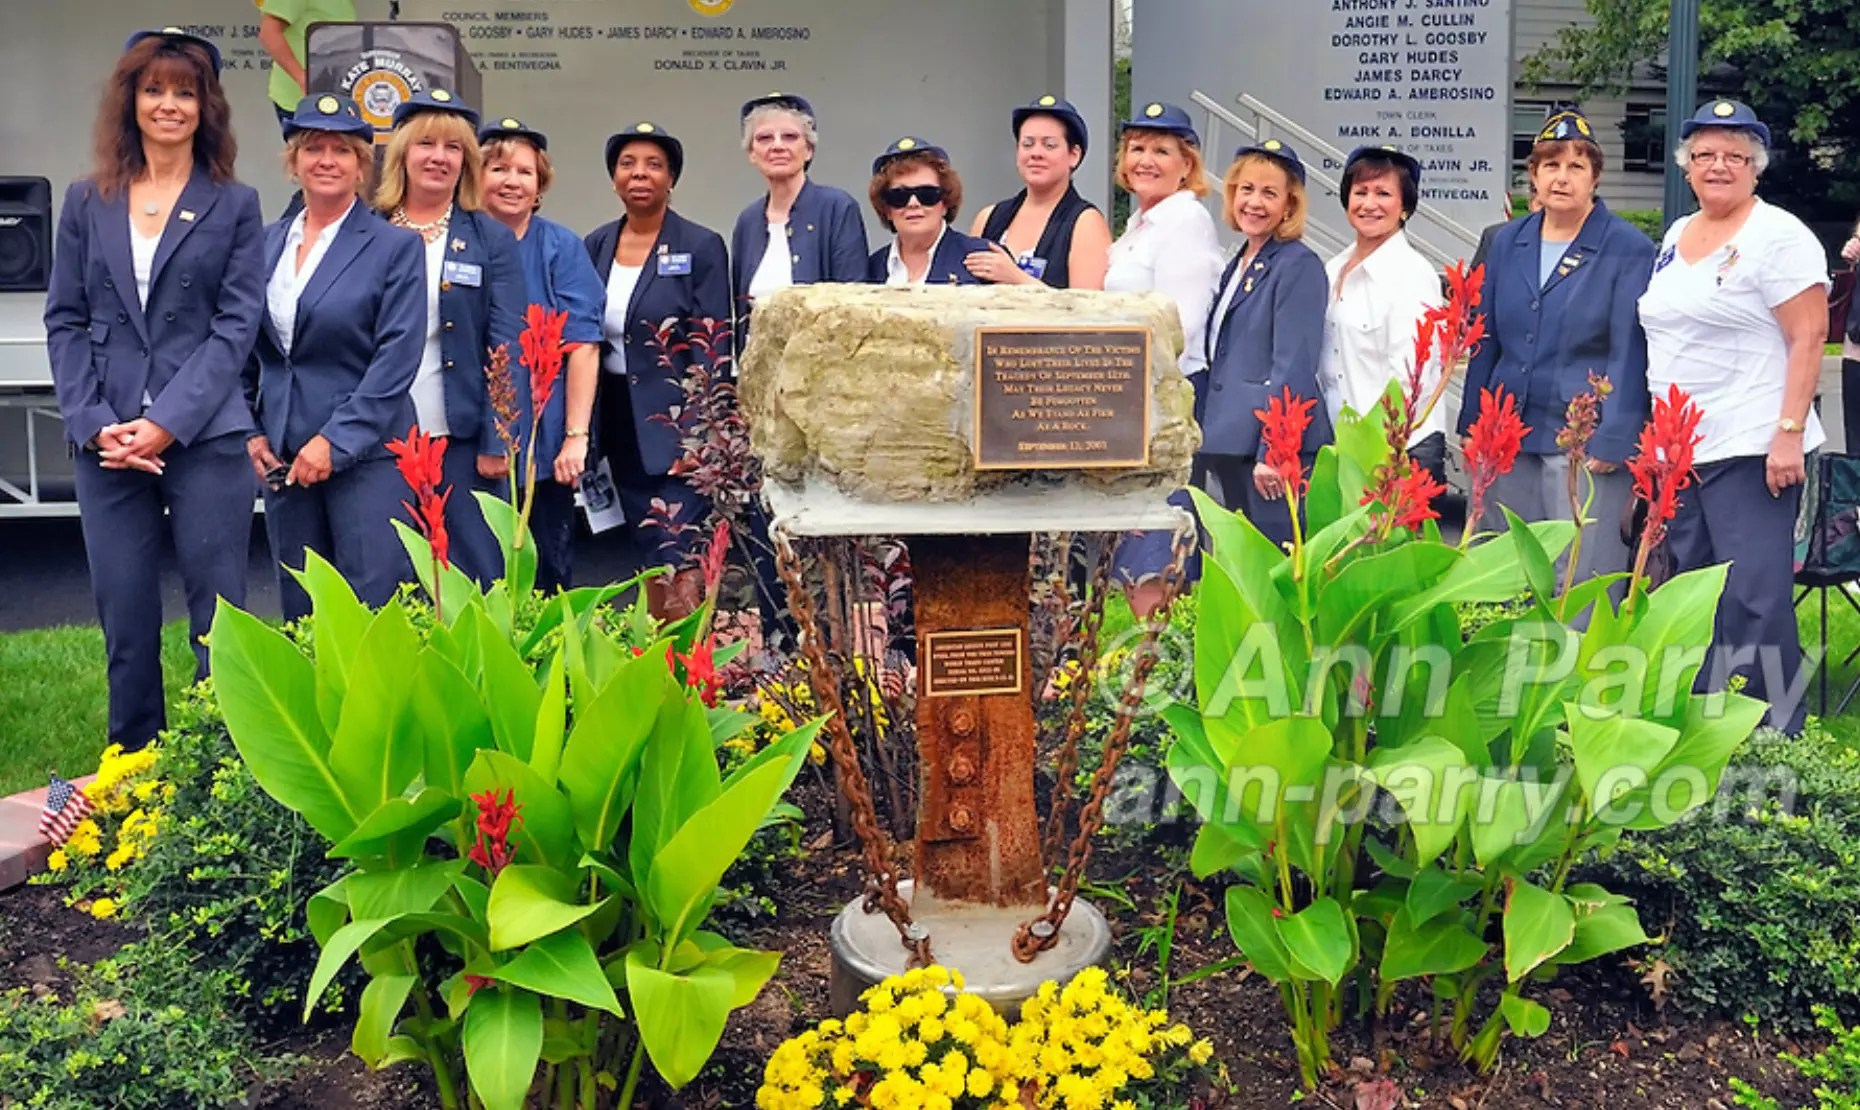 Merrick, NY, USA. Sept. 11, 2011. Merrick Auxiliary Unit of Merrick Post 1282 of American Legion, (L-R) MARGARET BEIGELMAN, DEBRA BERNHARD, CLAUDIA BORECKY, FLORENCE HOFFMAN, DELORES PARSONS, BRIDEE TONN, LUCY MURPHY, DIANNE CANCRO, PAT TROPEA, SHARON WILLIAMS, BETTY TUCKER, BARBARA BYRNE, and FAY AMBROSINO, at 9/11 event dedicating monument with steel from site of World Trade Center, at Merrick Veterans Memorial Park.